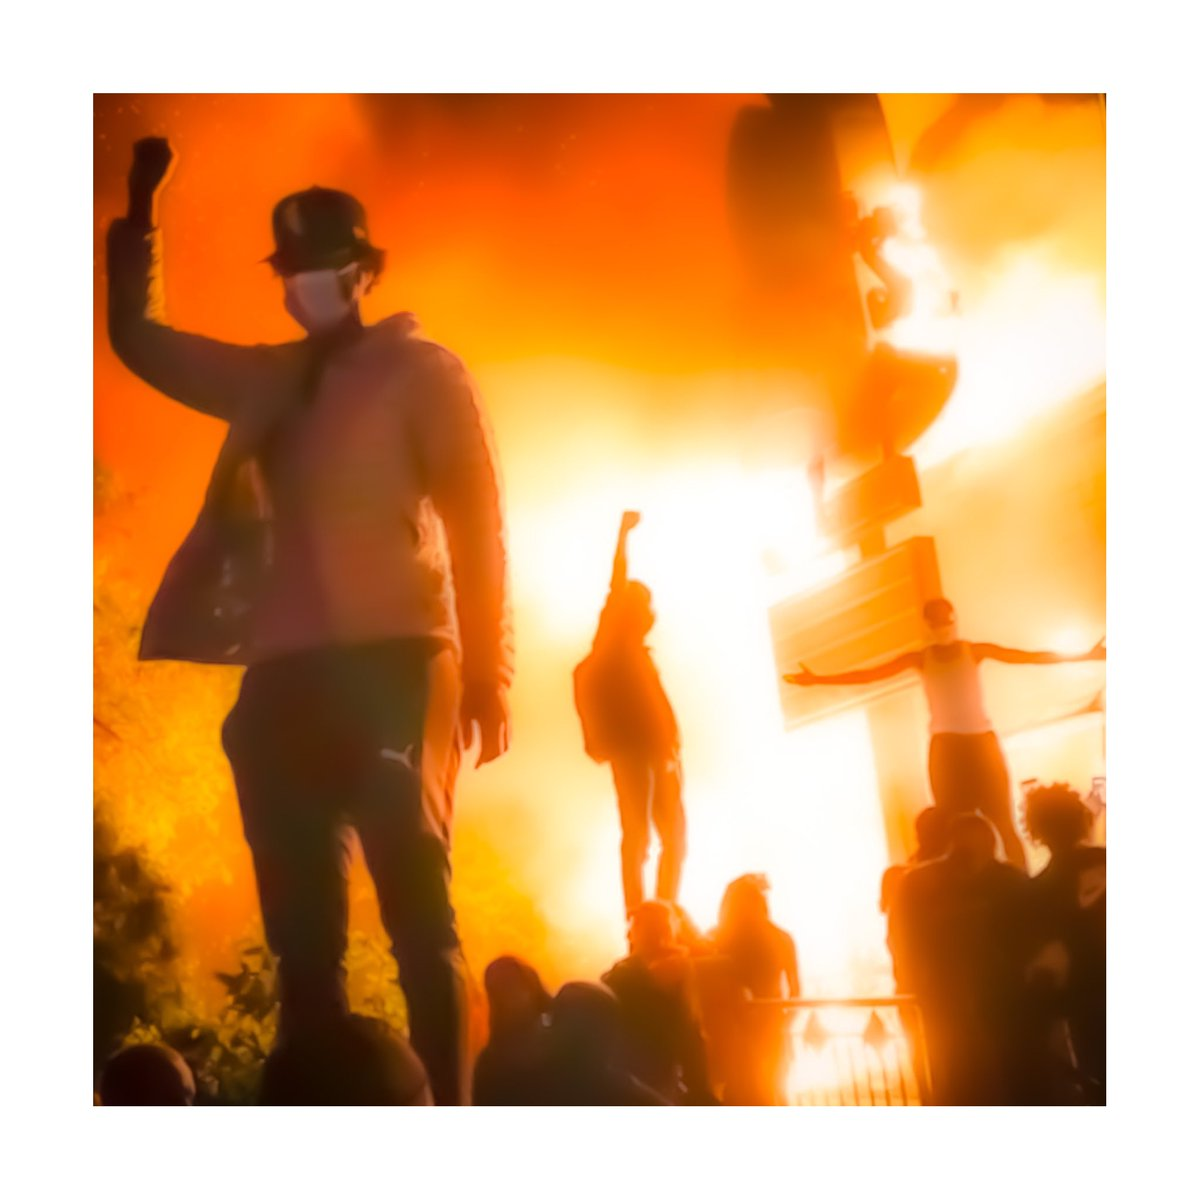 This would be a amazing album cover #riots2020 #MinneapolisRiot #GeorgeFloyd